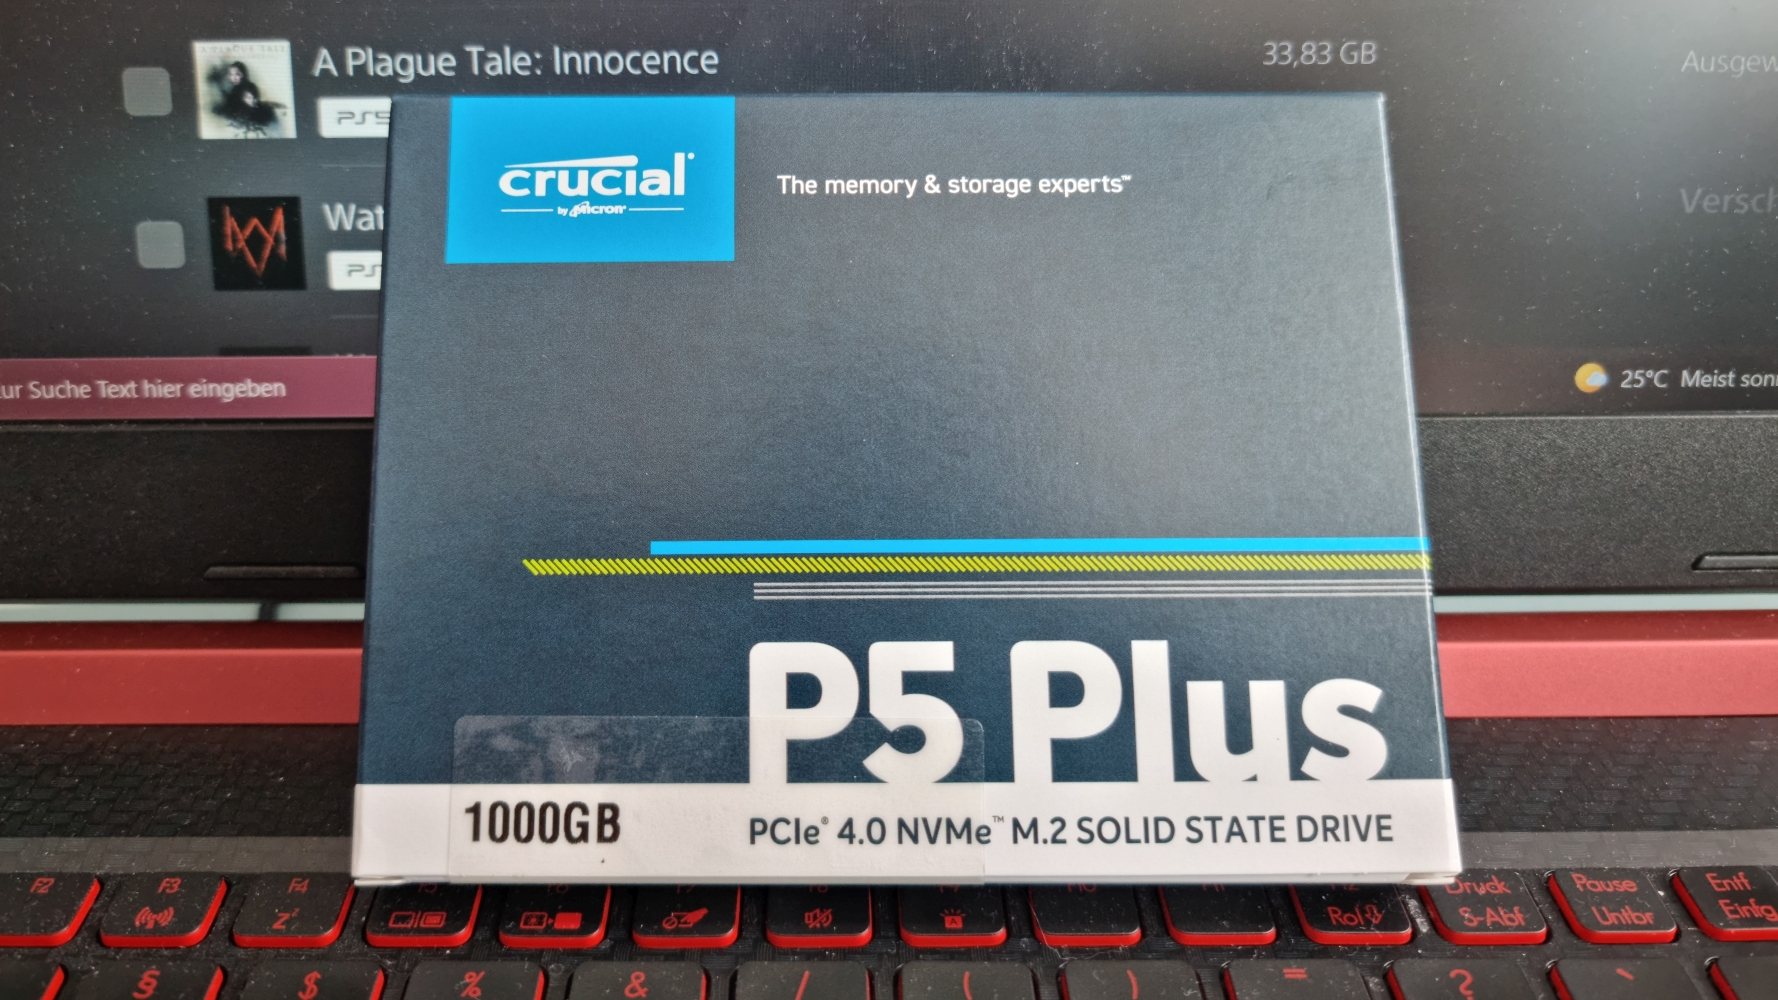 PlayStation 5 M.2 NVME PCIe 4.0 SSD Crucial P5 Plus Hülle